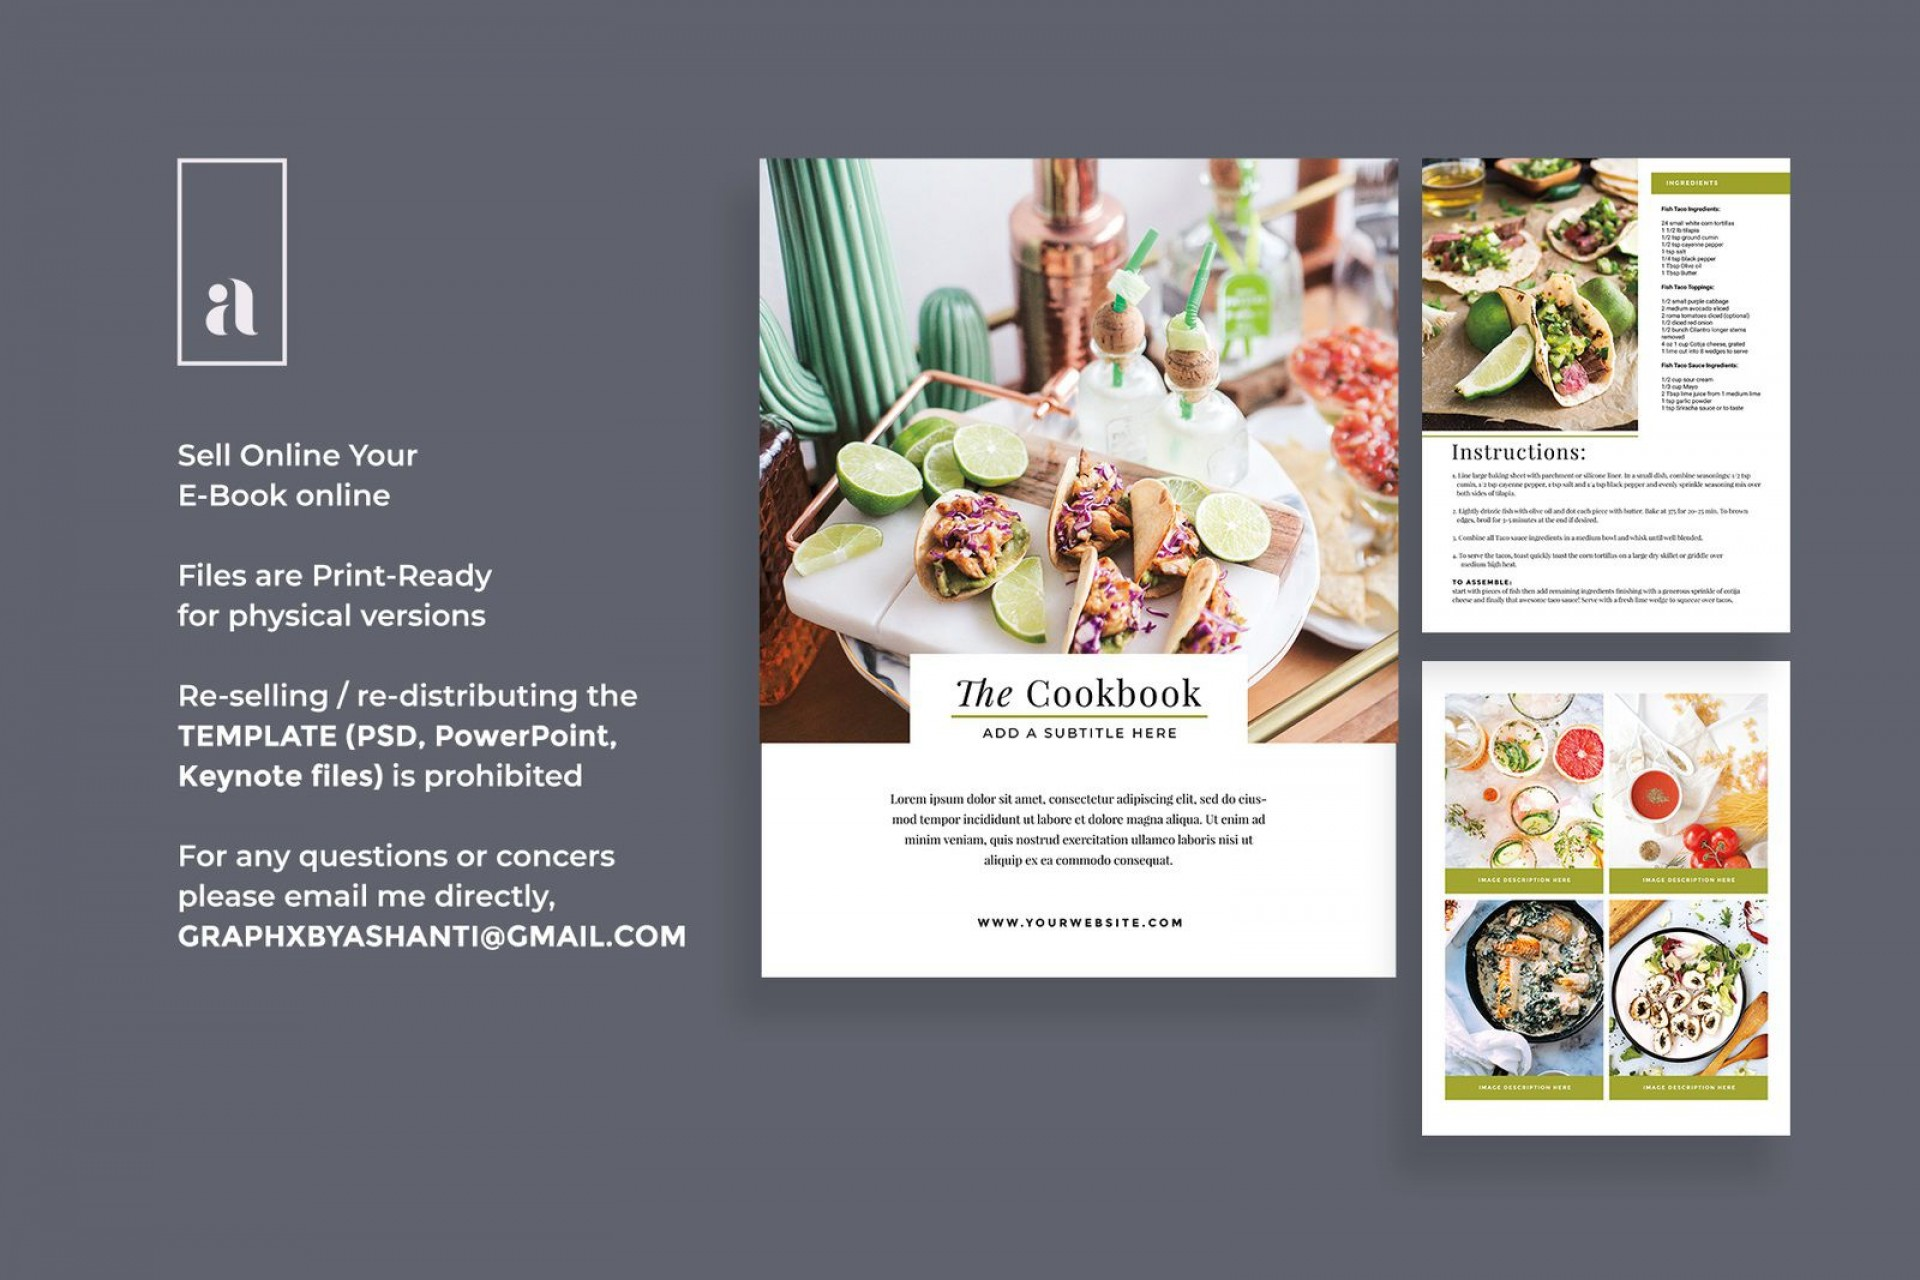 004 Magnificent Create Your Own Cookbook Free Template Design 1920